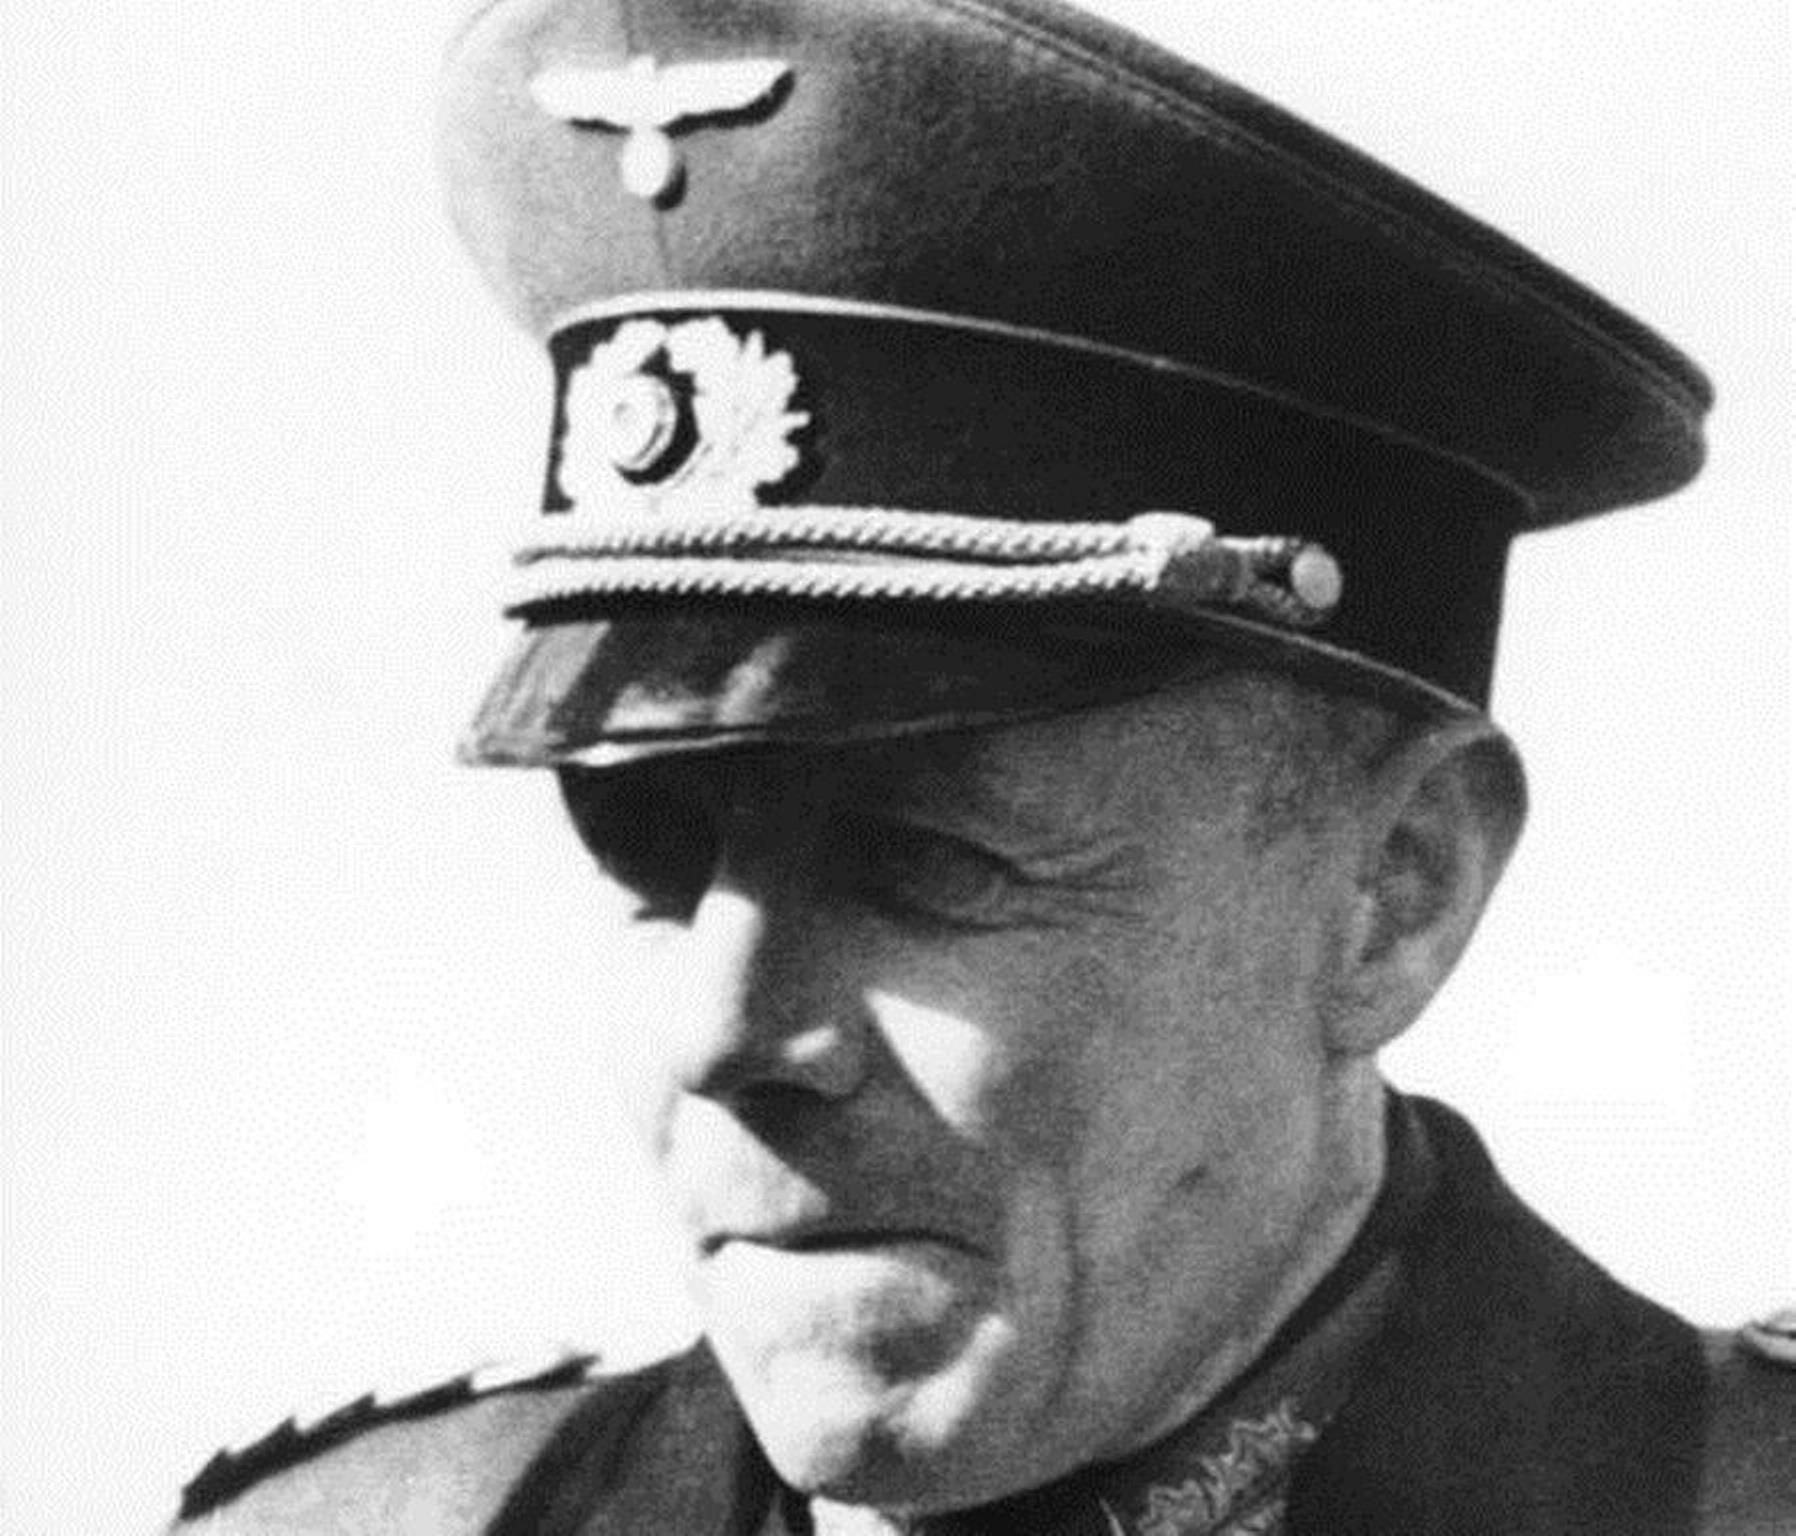 friedrich goerdeler and ludwig beck Monarchist profile: carl friedrich goerdeler carl friedrich goerdeler was another german monarchist who was a major figure in the anti-nazi movement general ludwig beck and count von moltke among others.